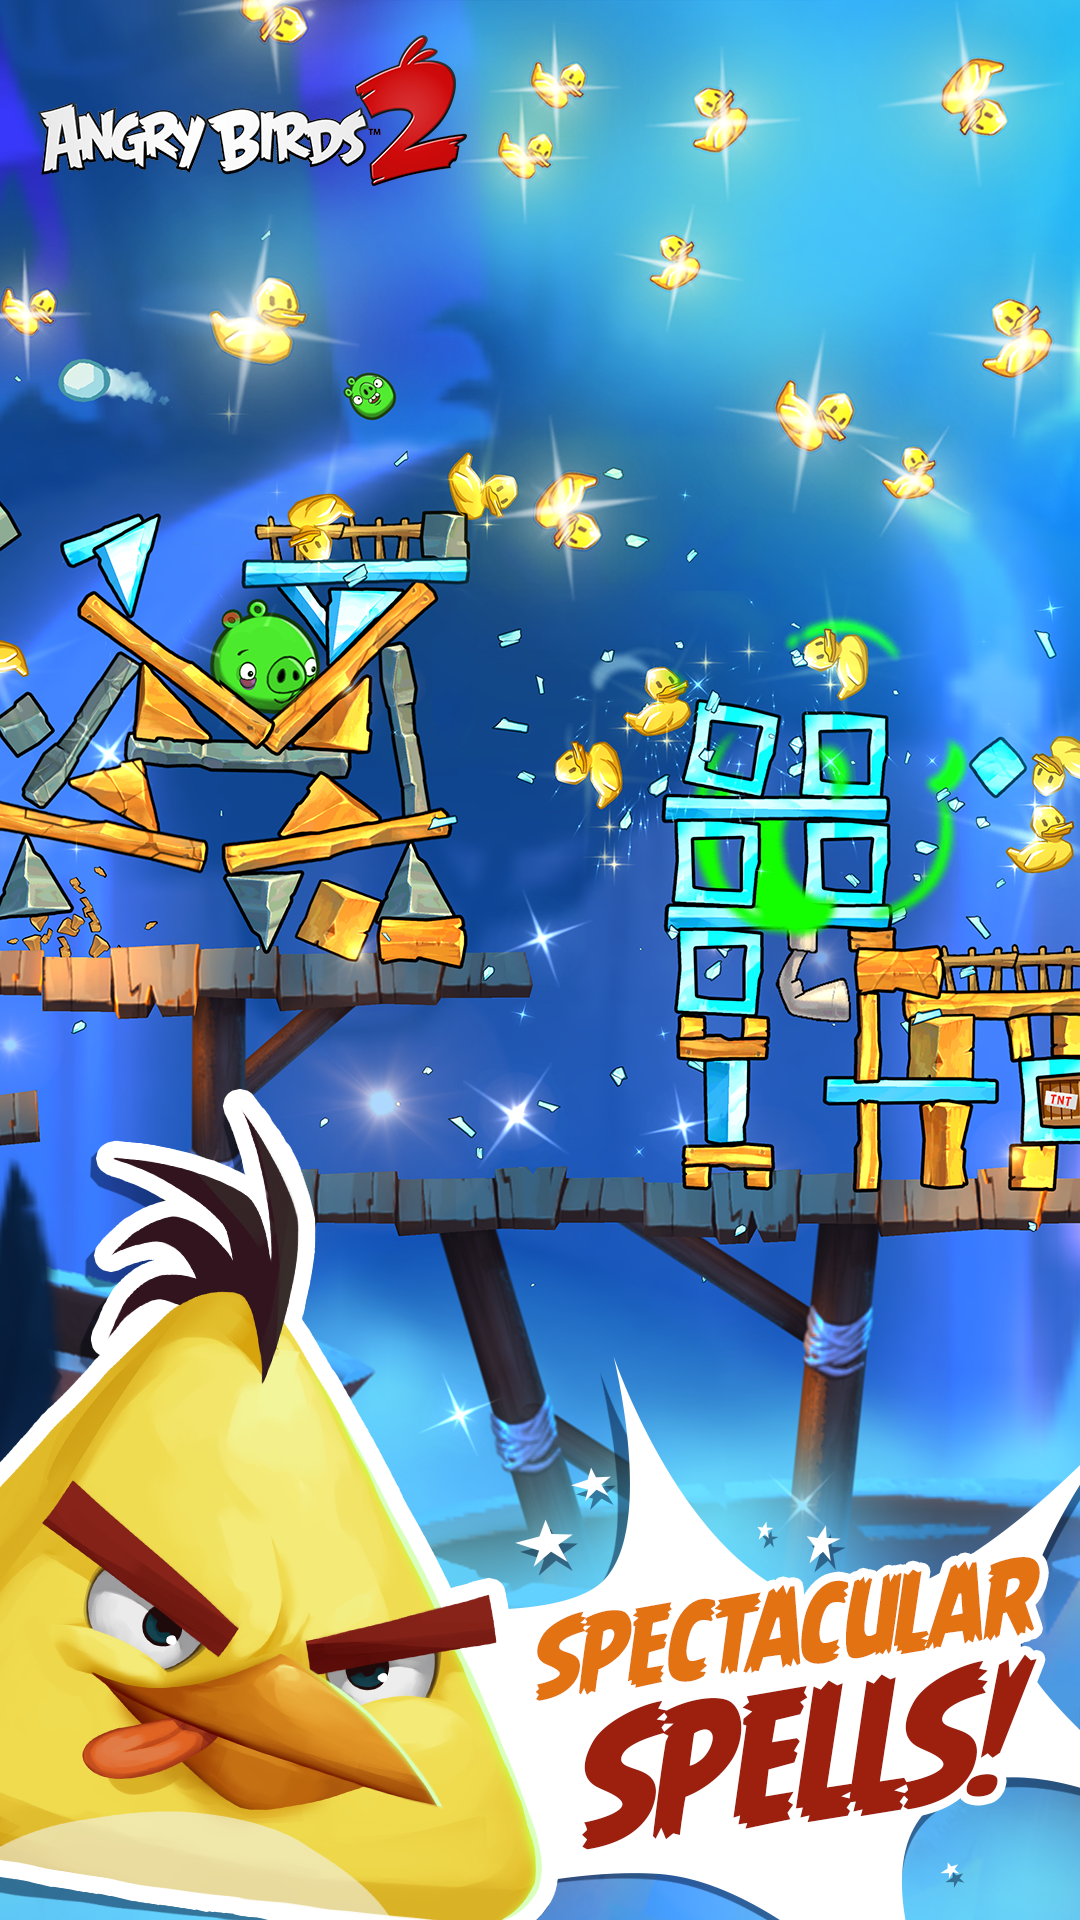 Angry Birds 2 screenshot #9